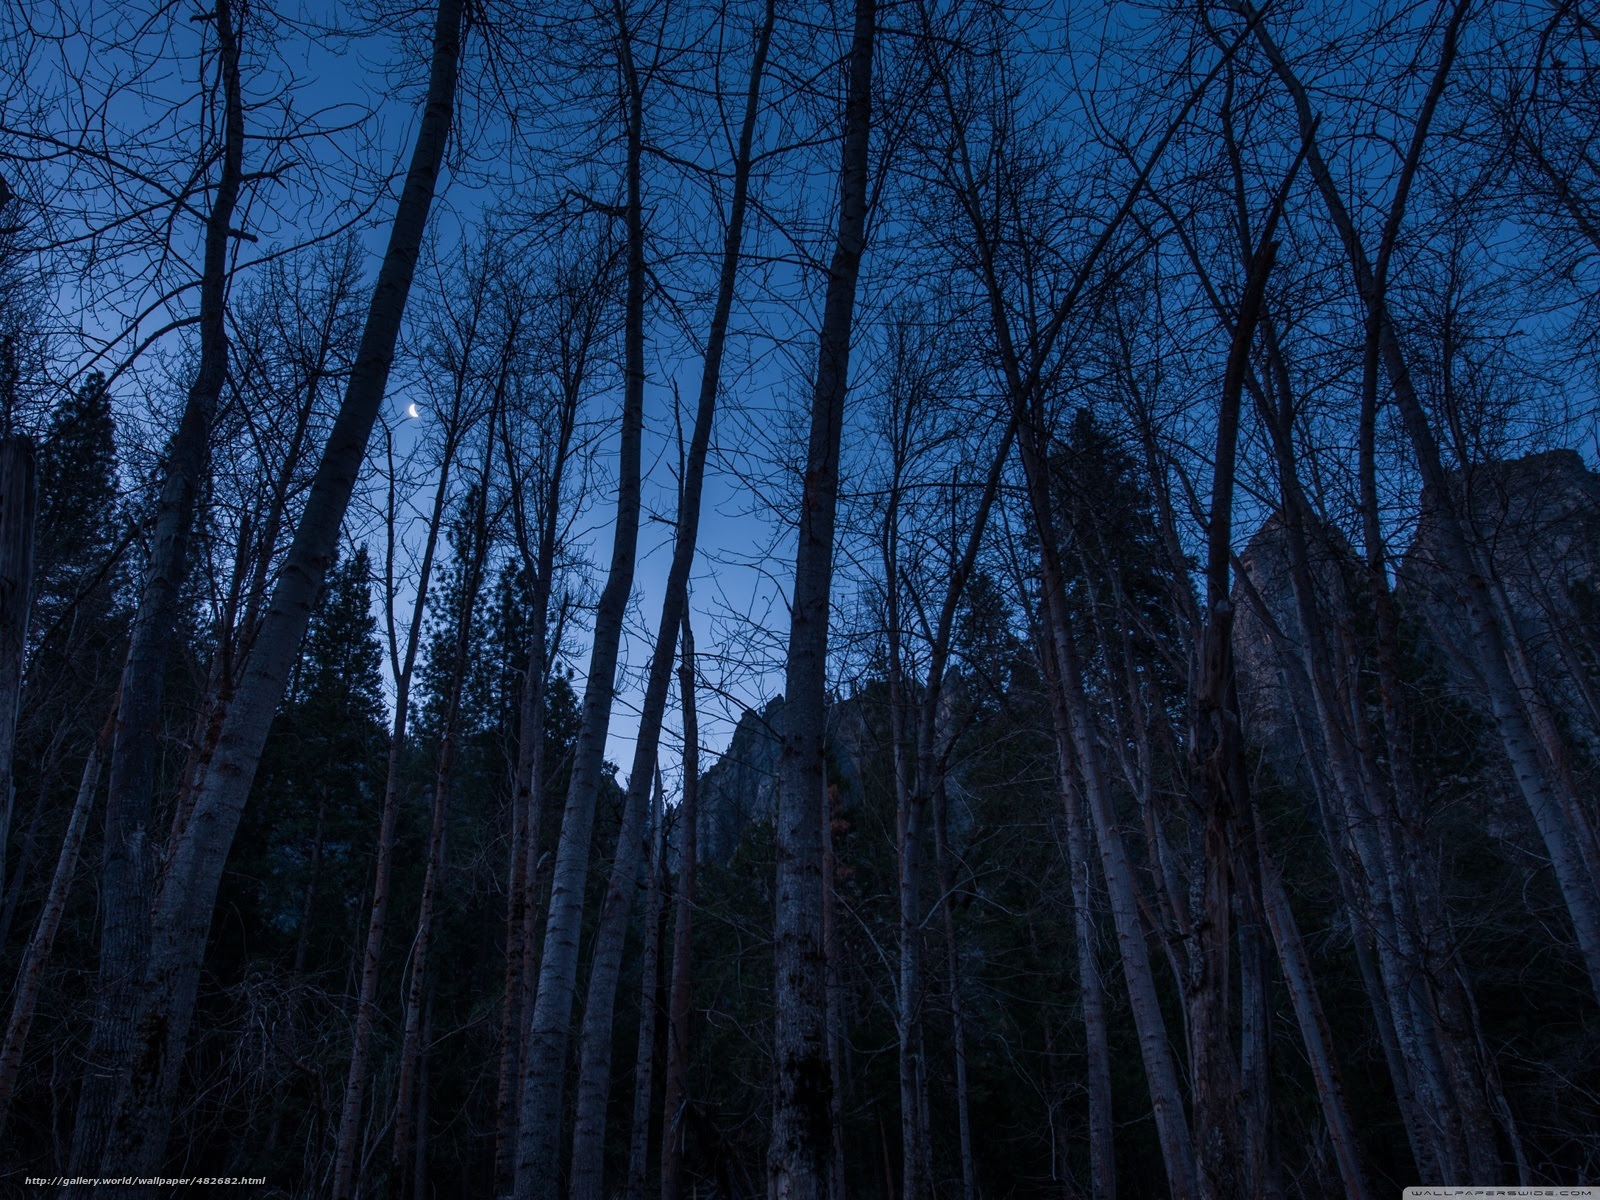 Download Wallpaper Nature Forest As Night In The Woods Free